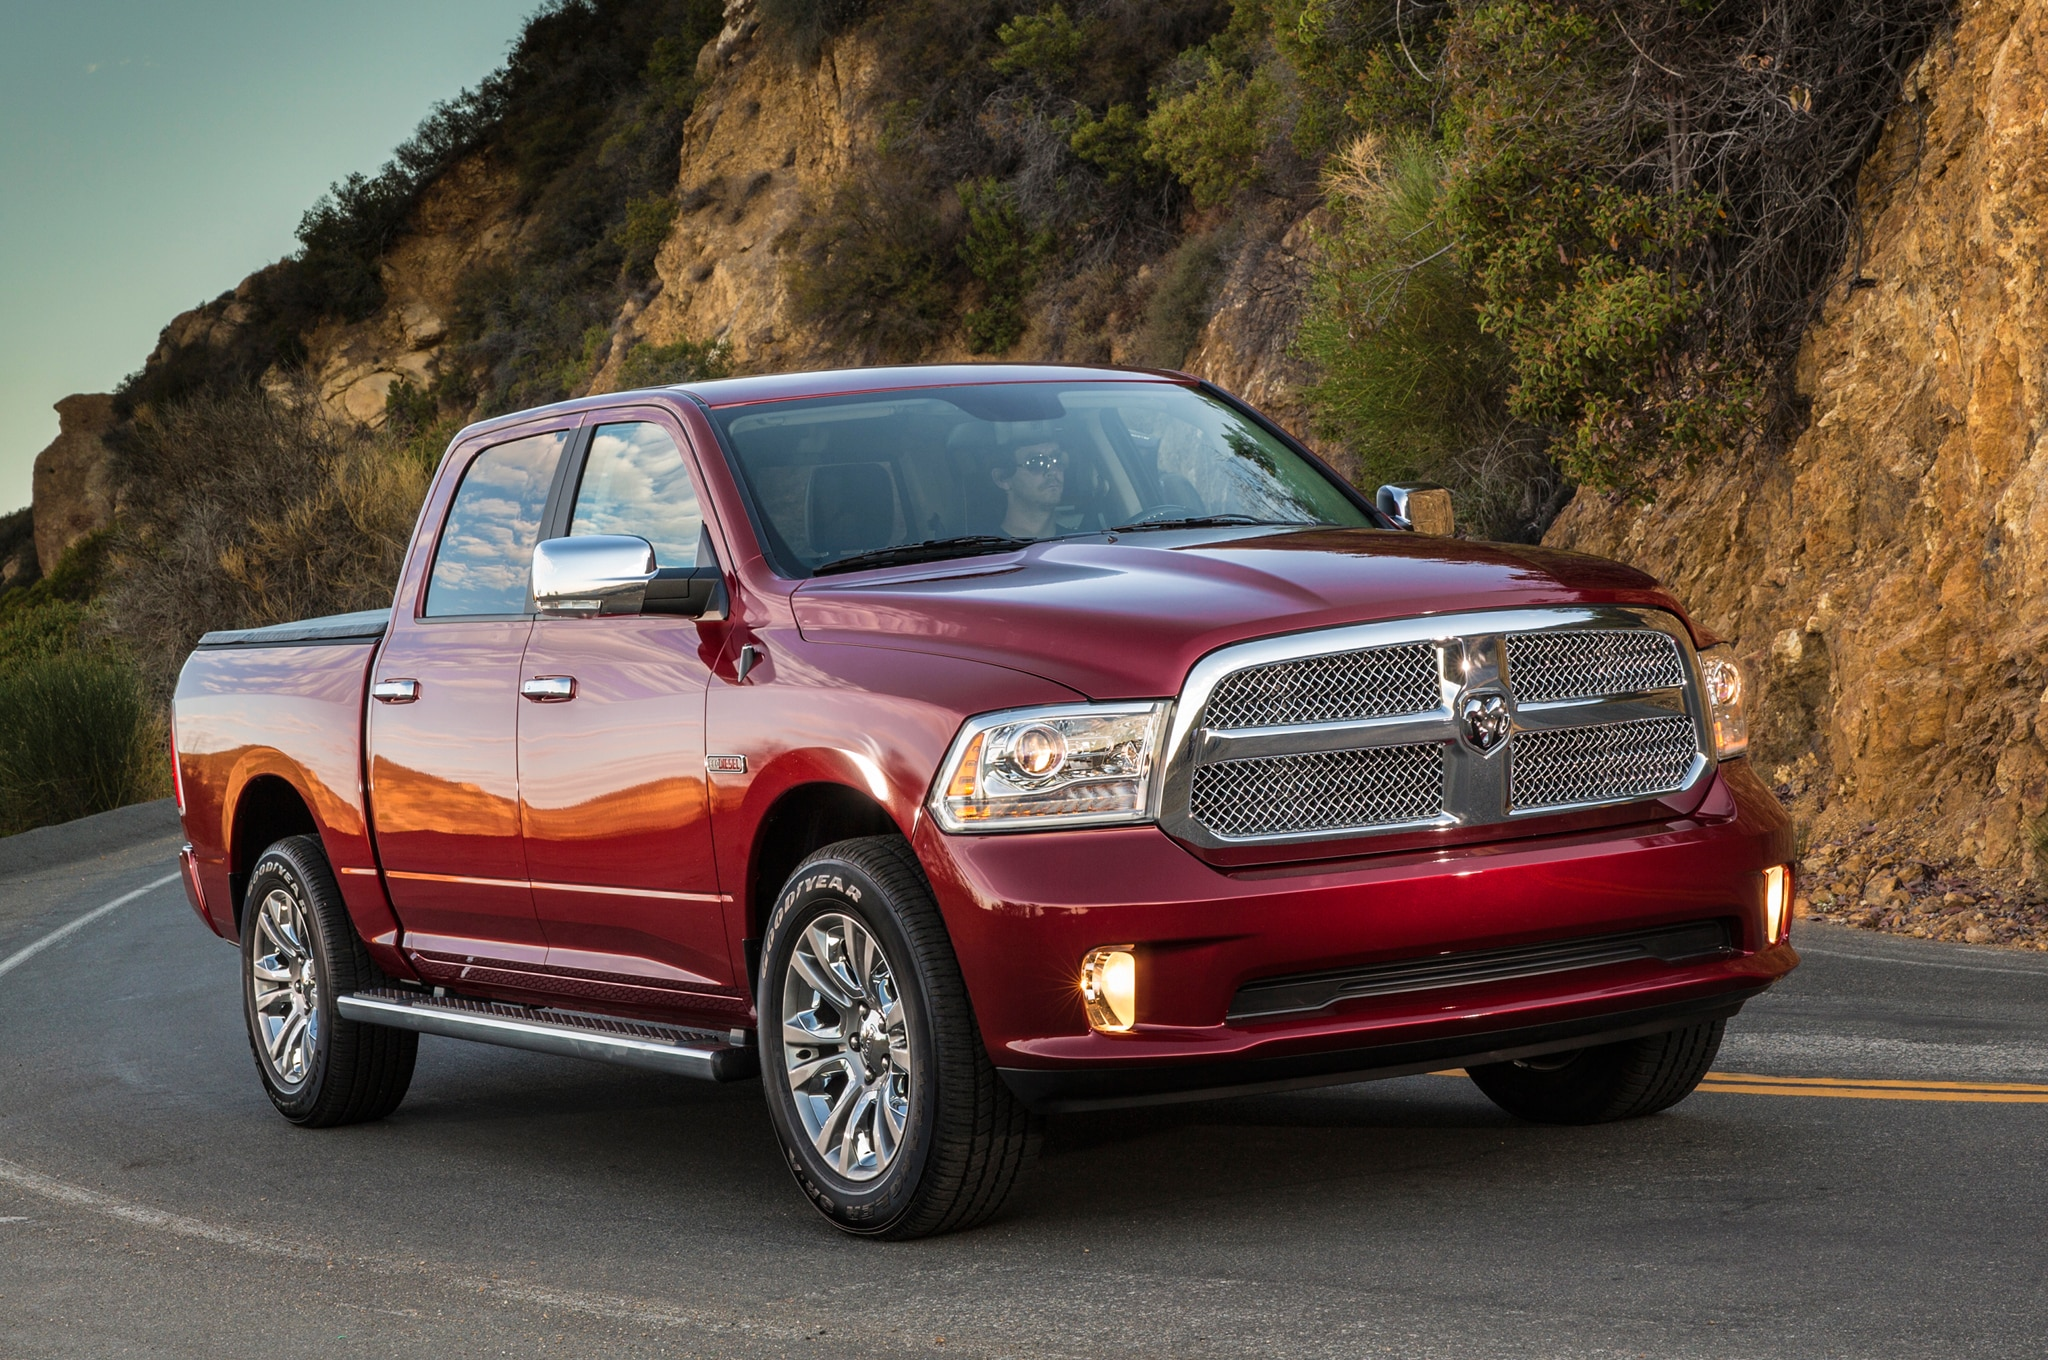 2014 Ram 1500 Limited EcoDiesel Front1